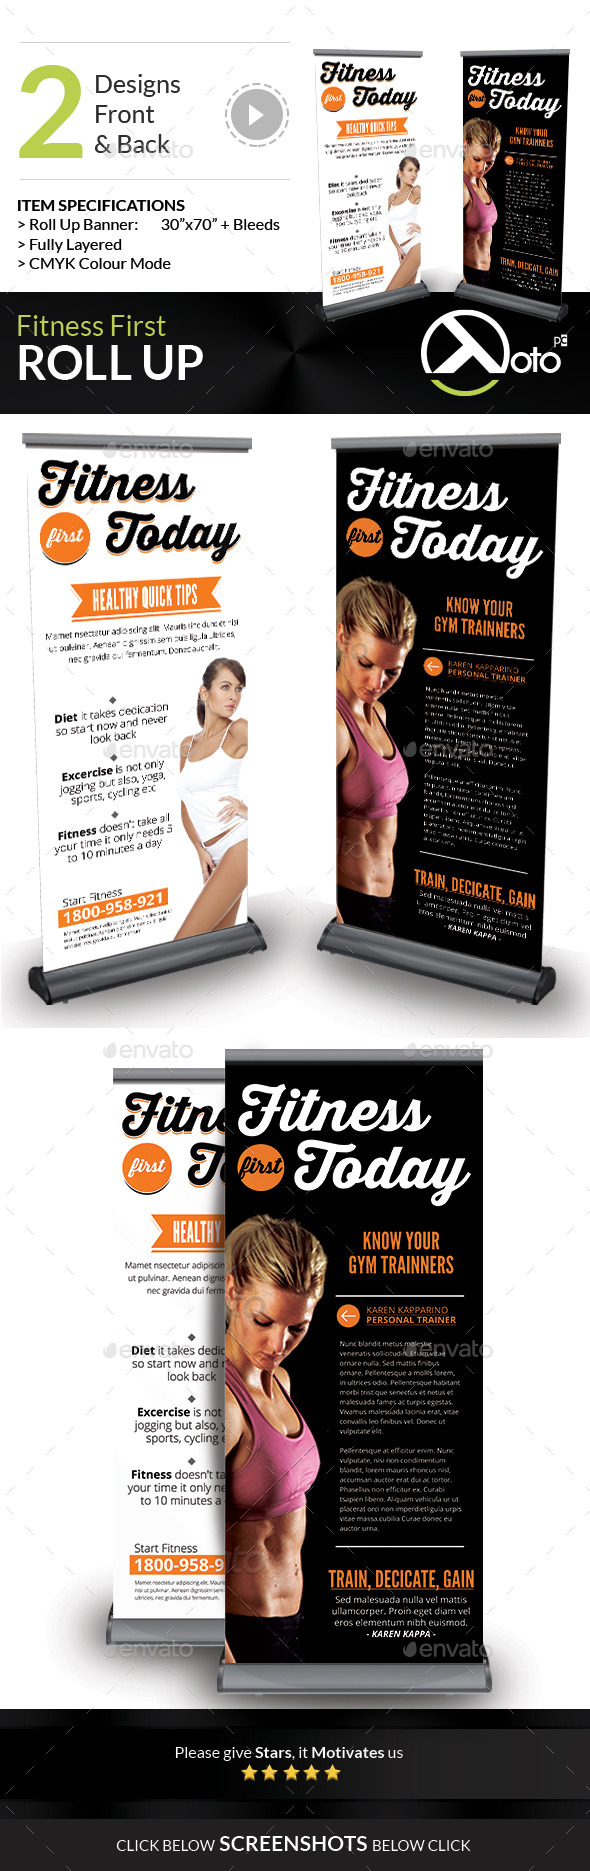 Fitness First Today Health Roll Up Banners - Signage Print Templates